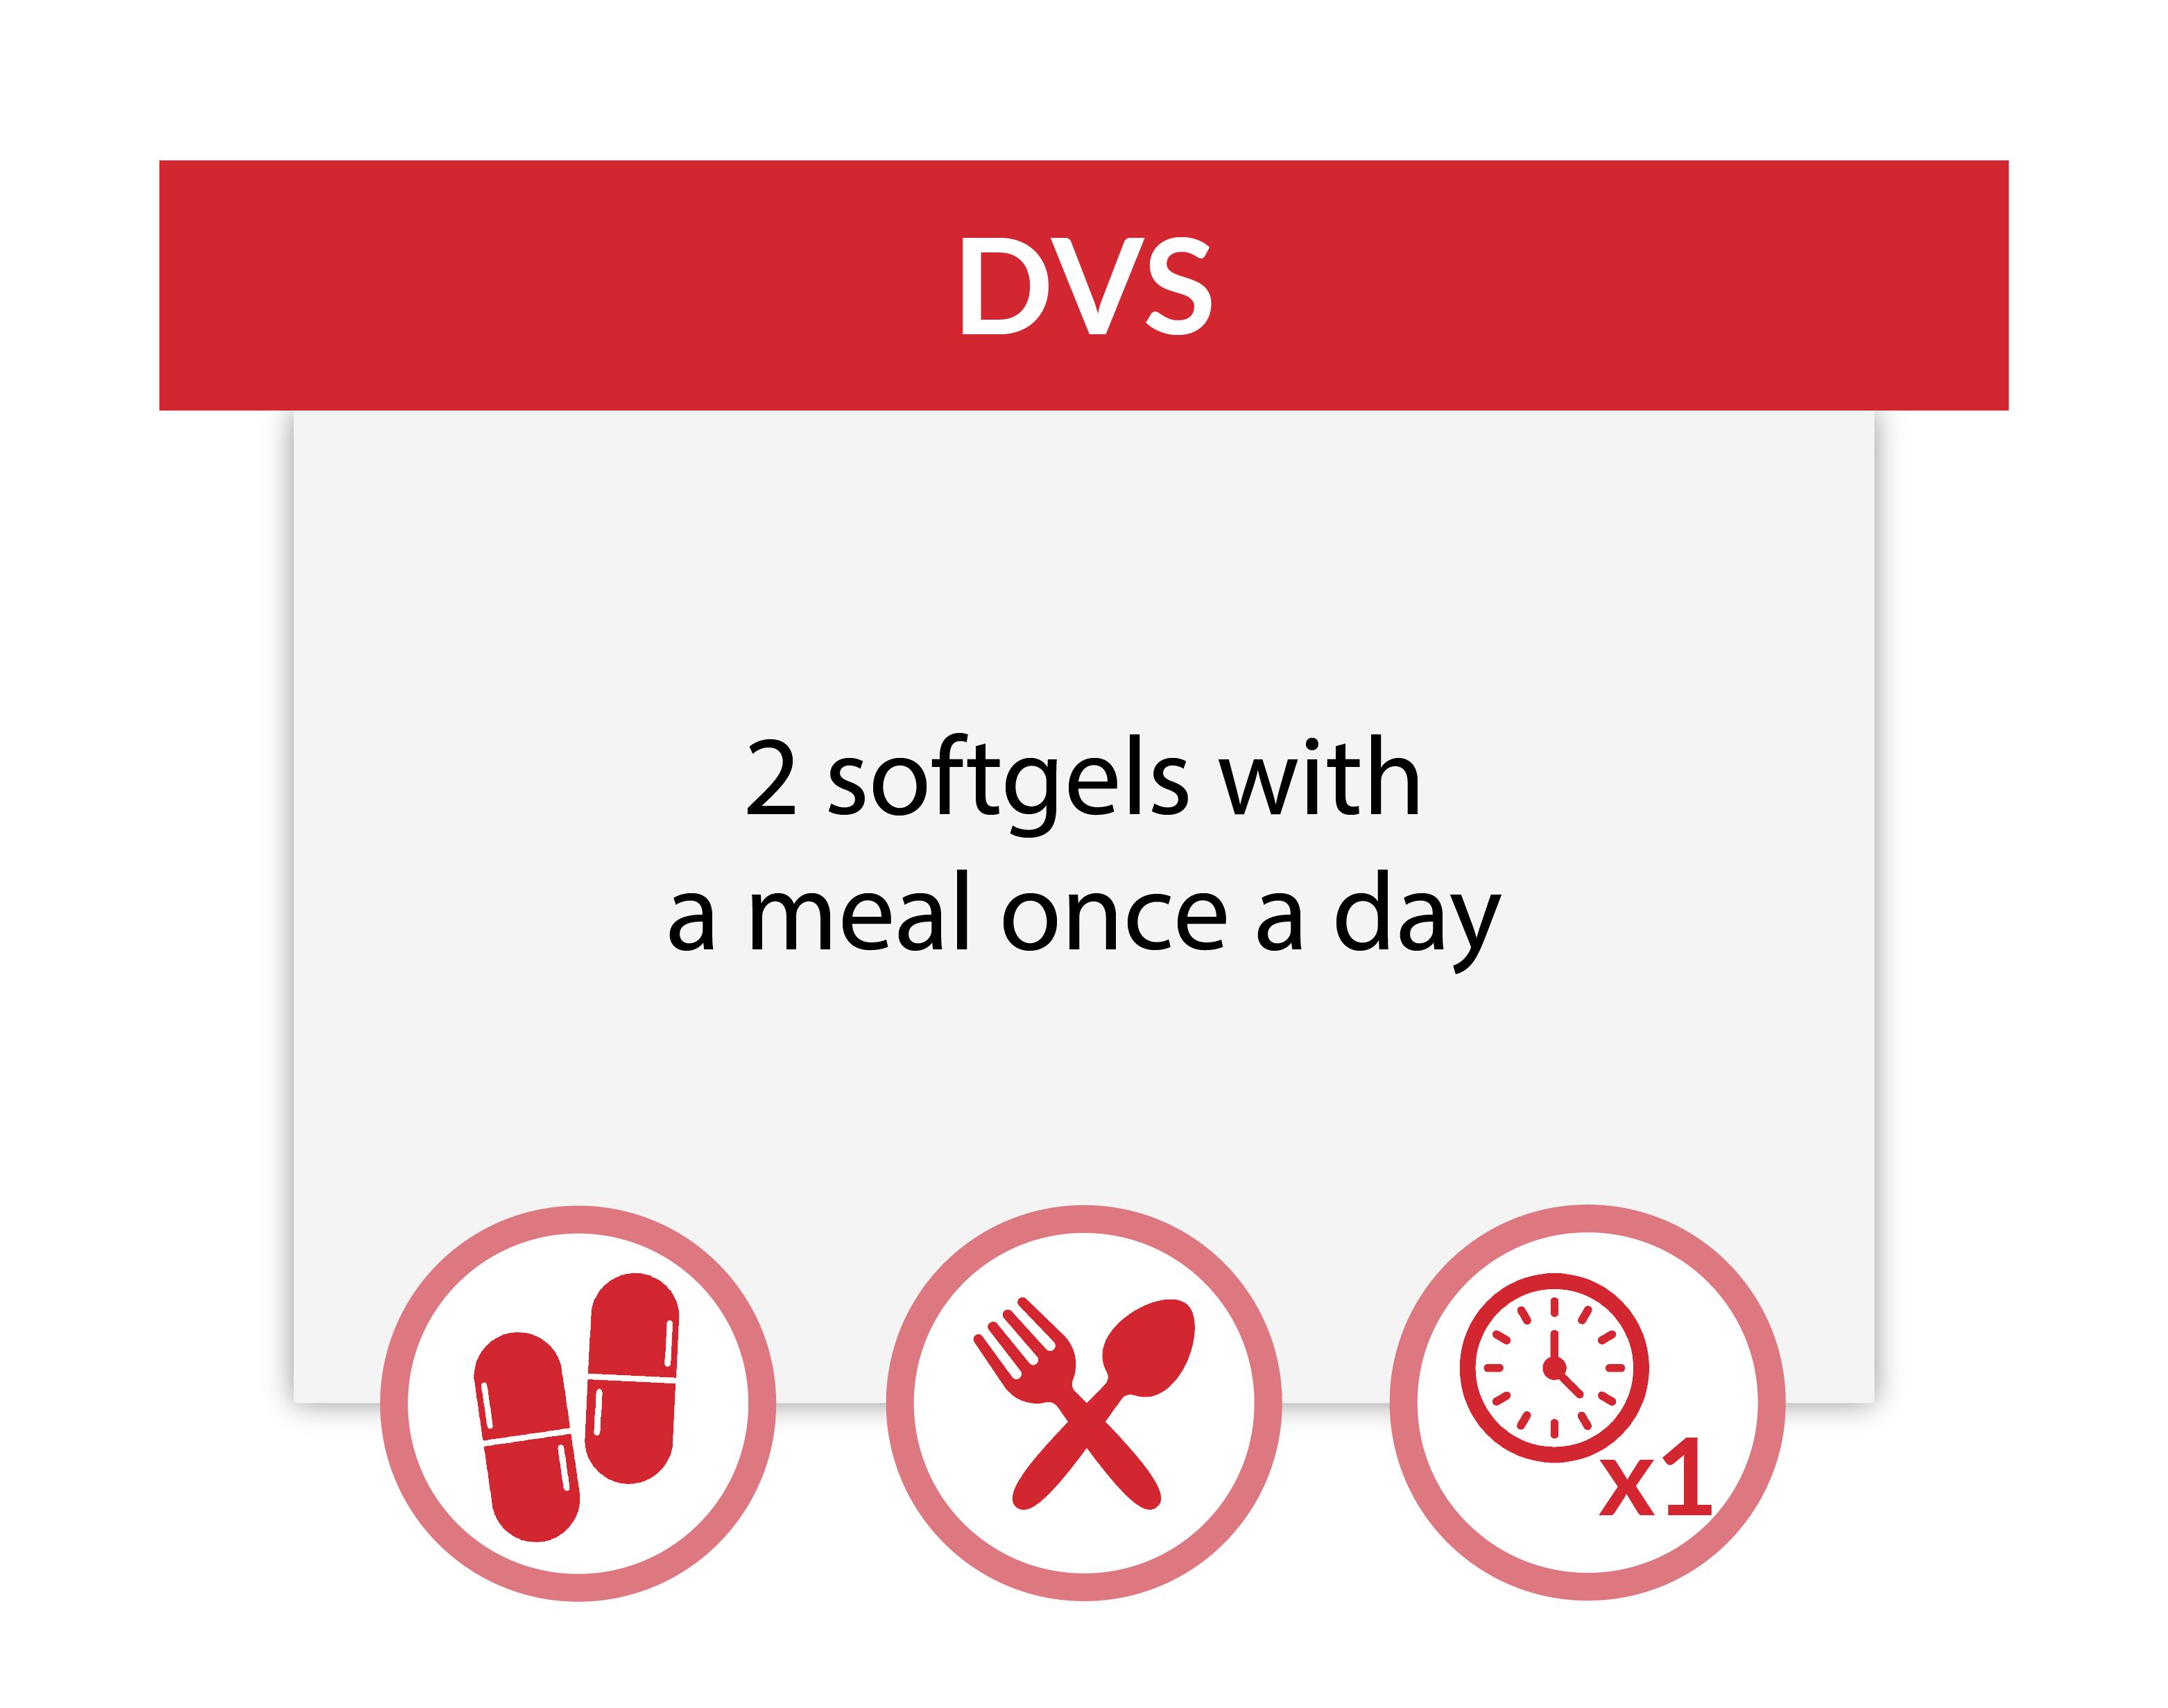 Take 2 DVS softgels with a meal once a day.